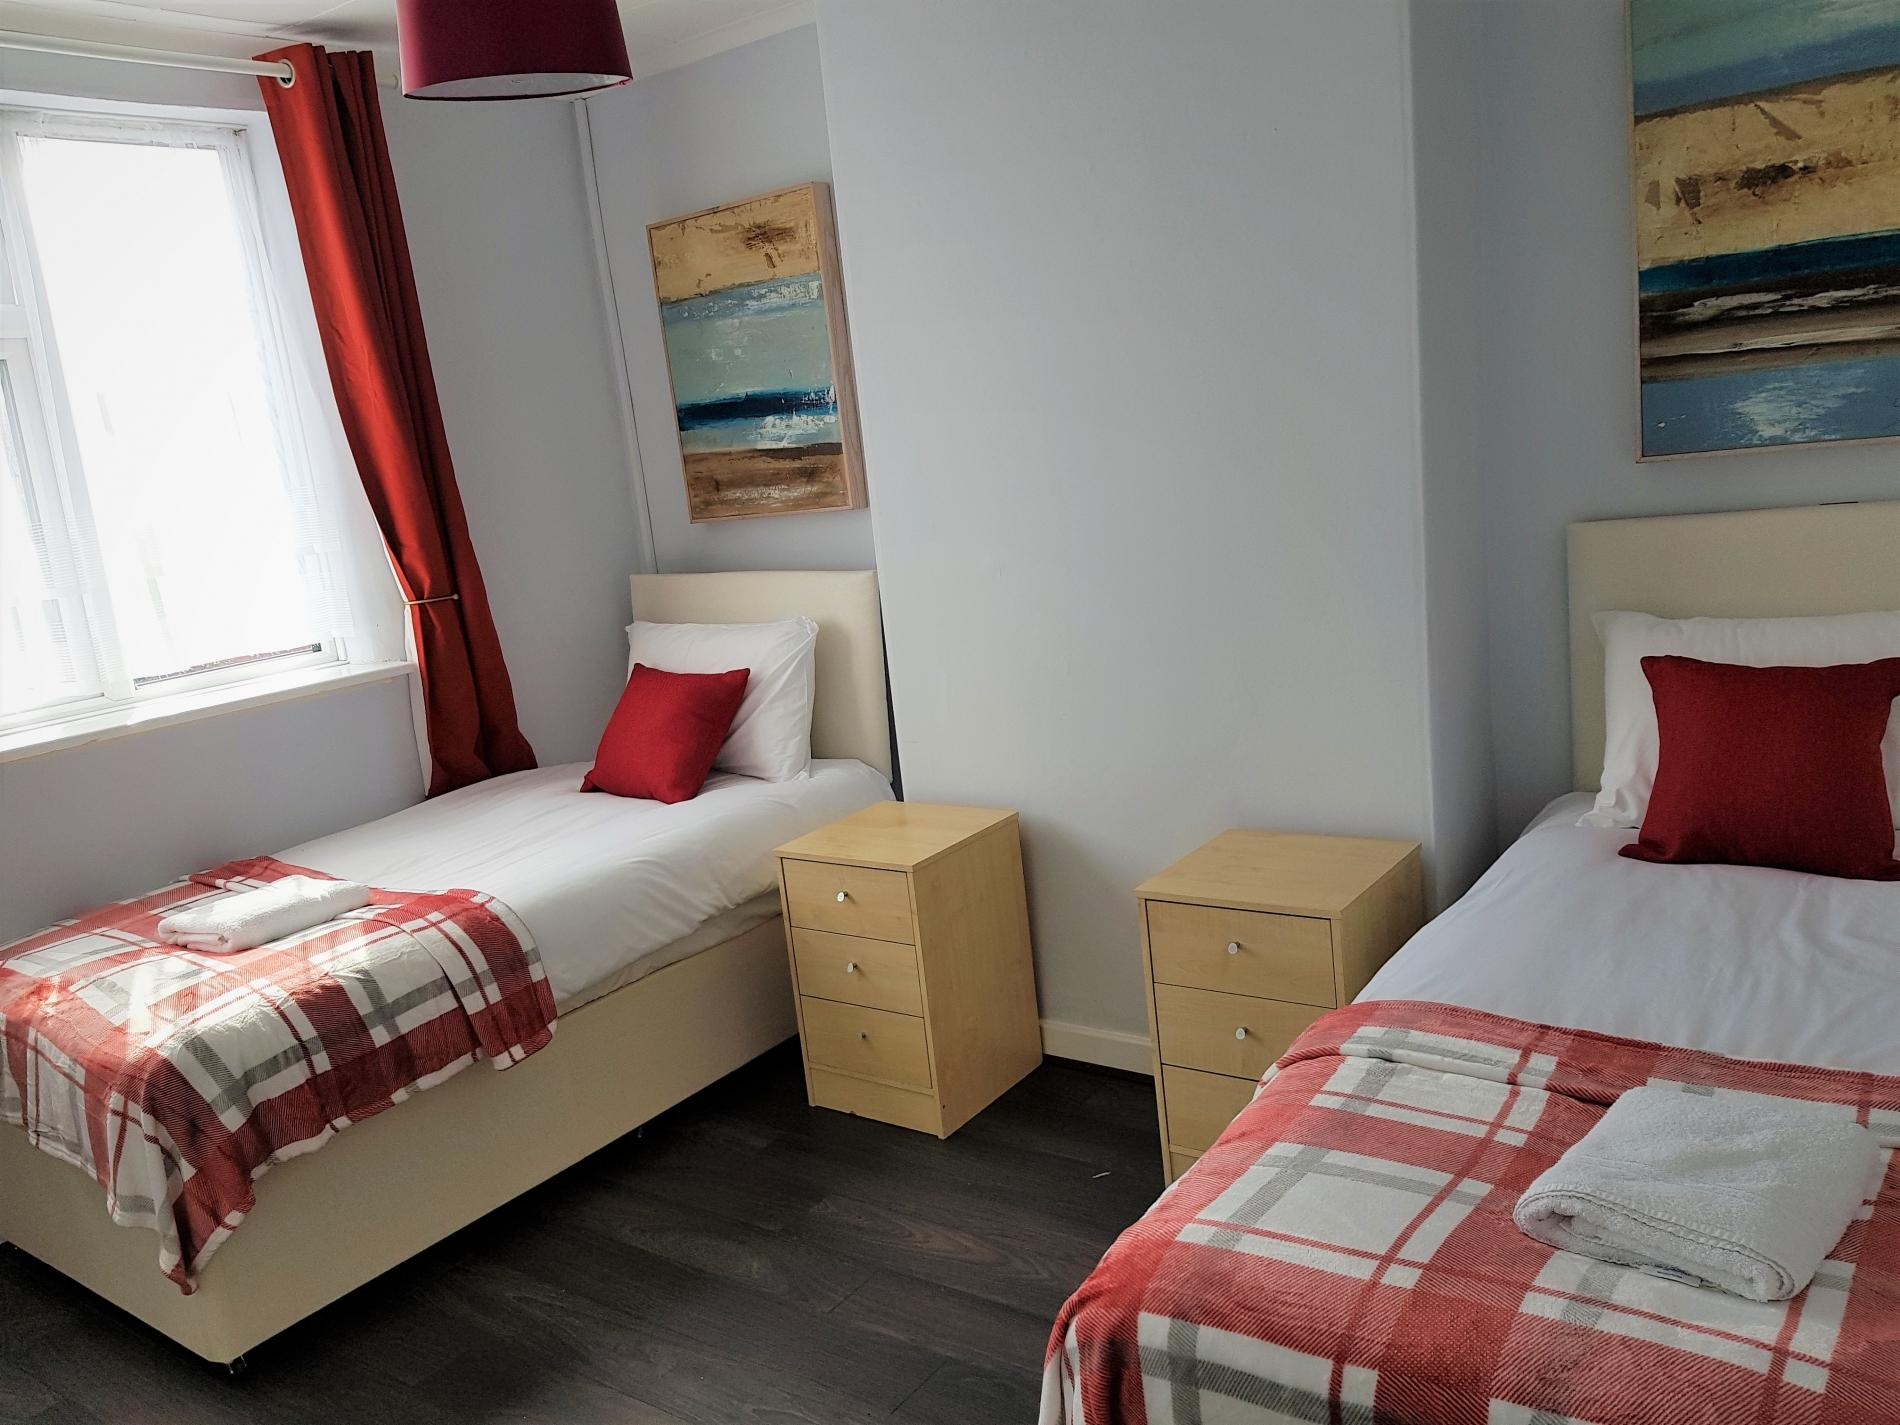 Twin at Garden City House, Carlton, Nottingham - Citybase Apartments